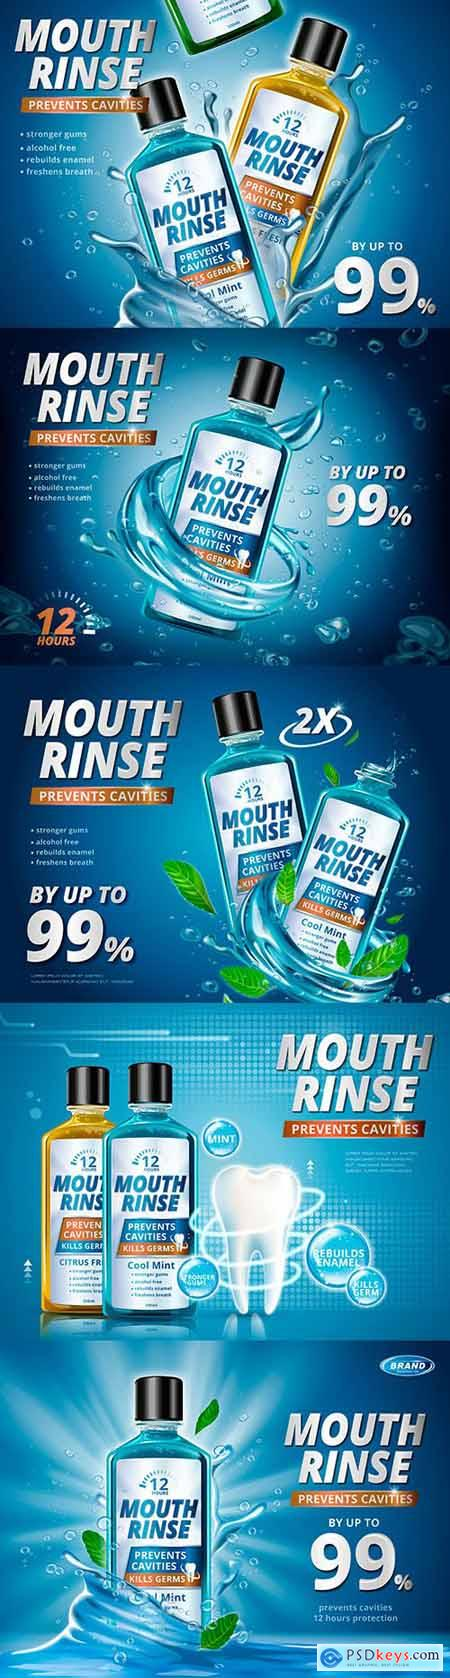 Mouthwash advertisements and refreshing 3d illustrations